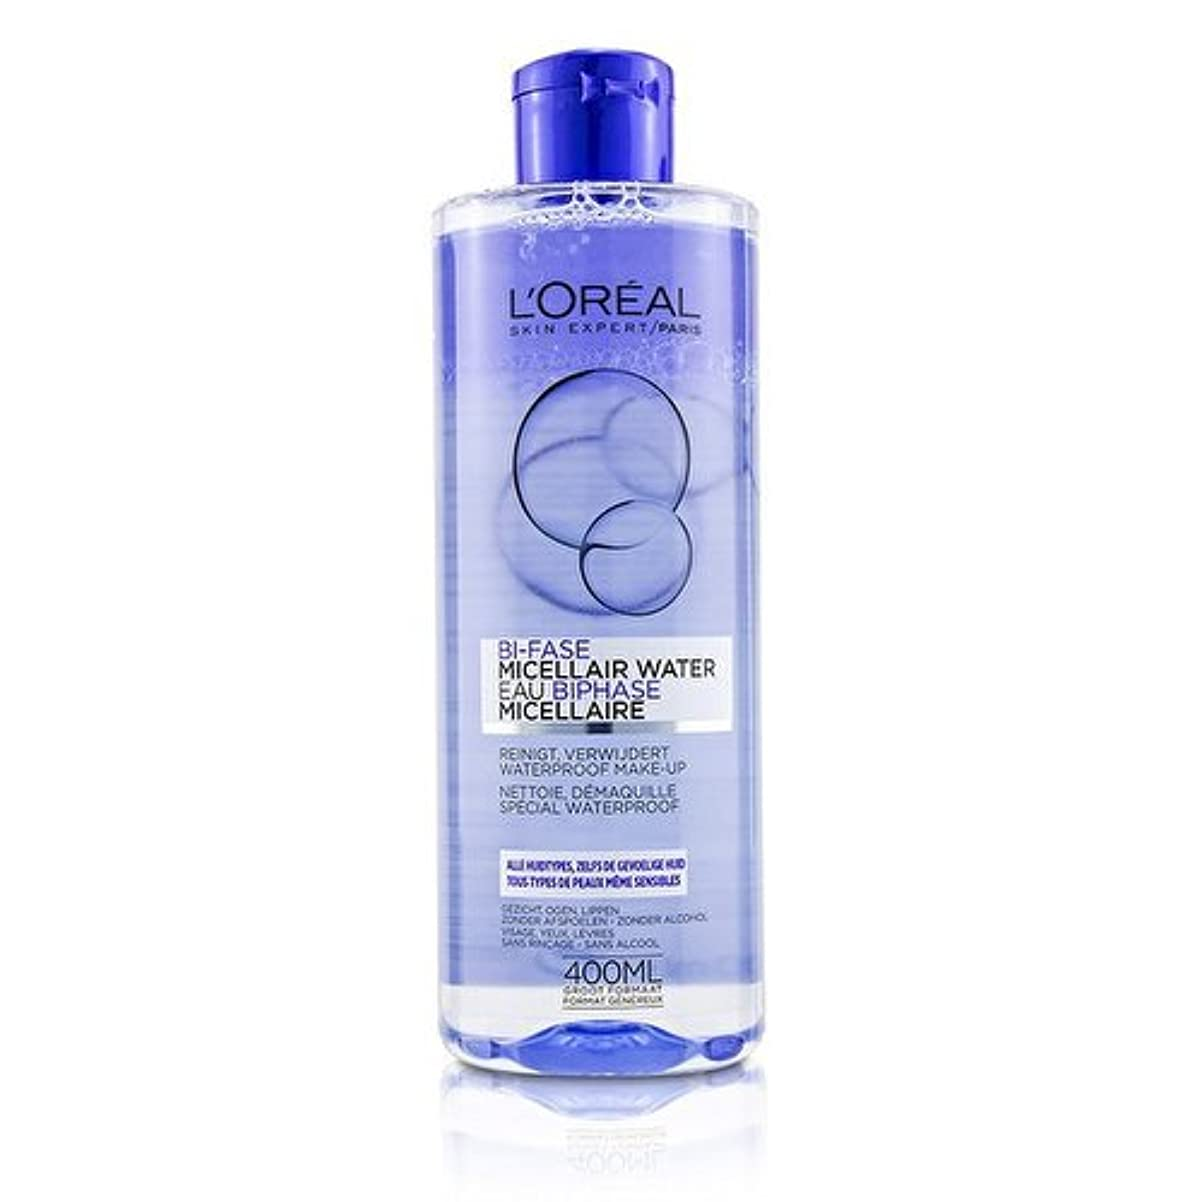 コンピューター光景シャベルロレアル Bi-Phase Micellar Water (Bi-Fase Micellair Water) - For All Skin Types, even Sensitive Skin 400ml/13.3oz並行輸入品